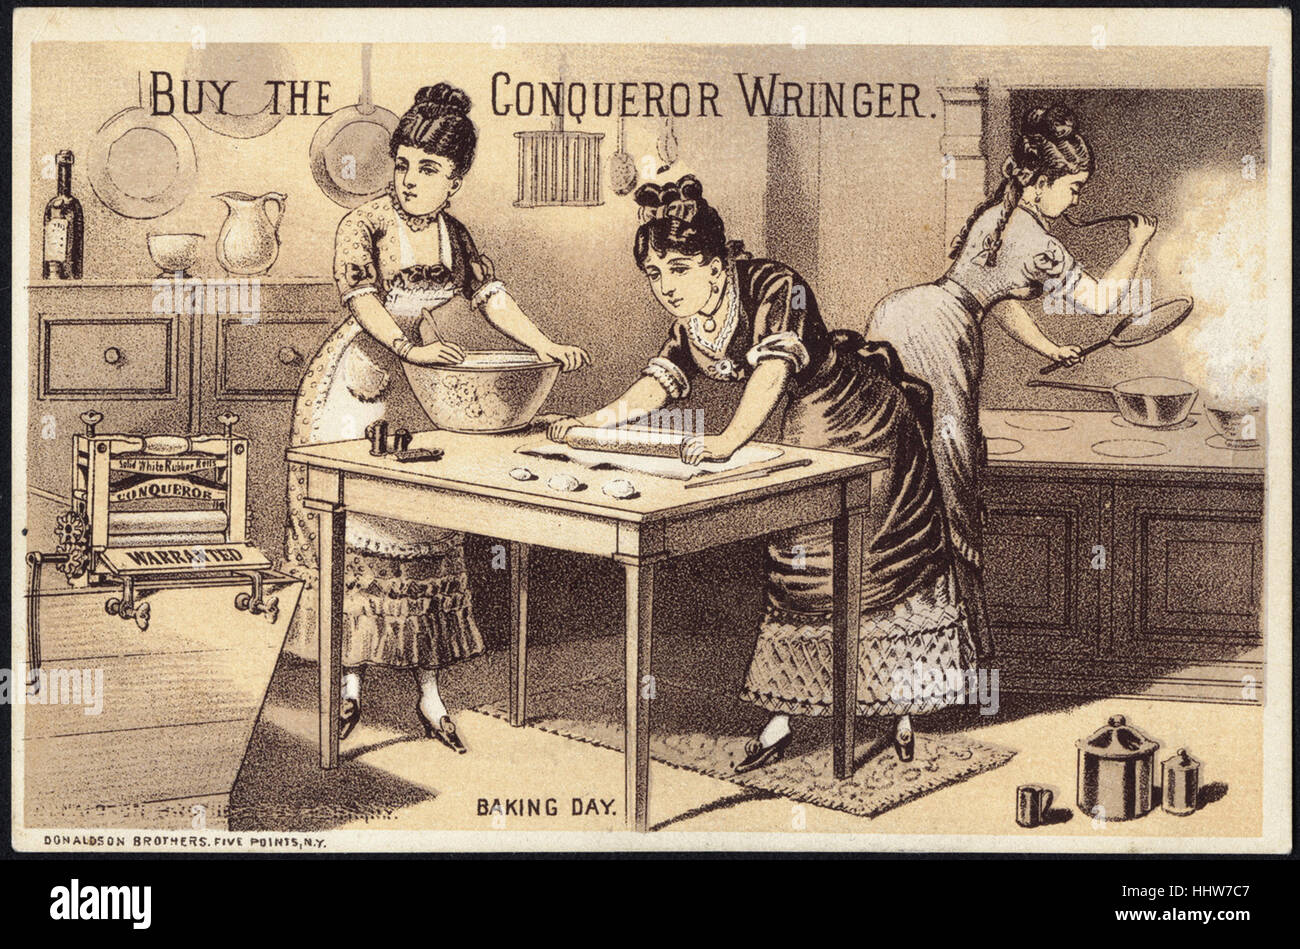 Buy the Conqueror Wringer. Baking day. [front]  - Laundry Trade Cards - Stock Image